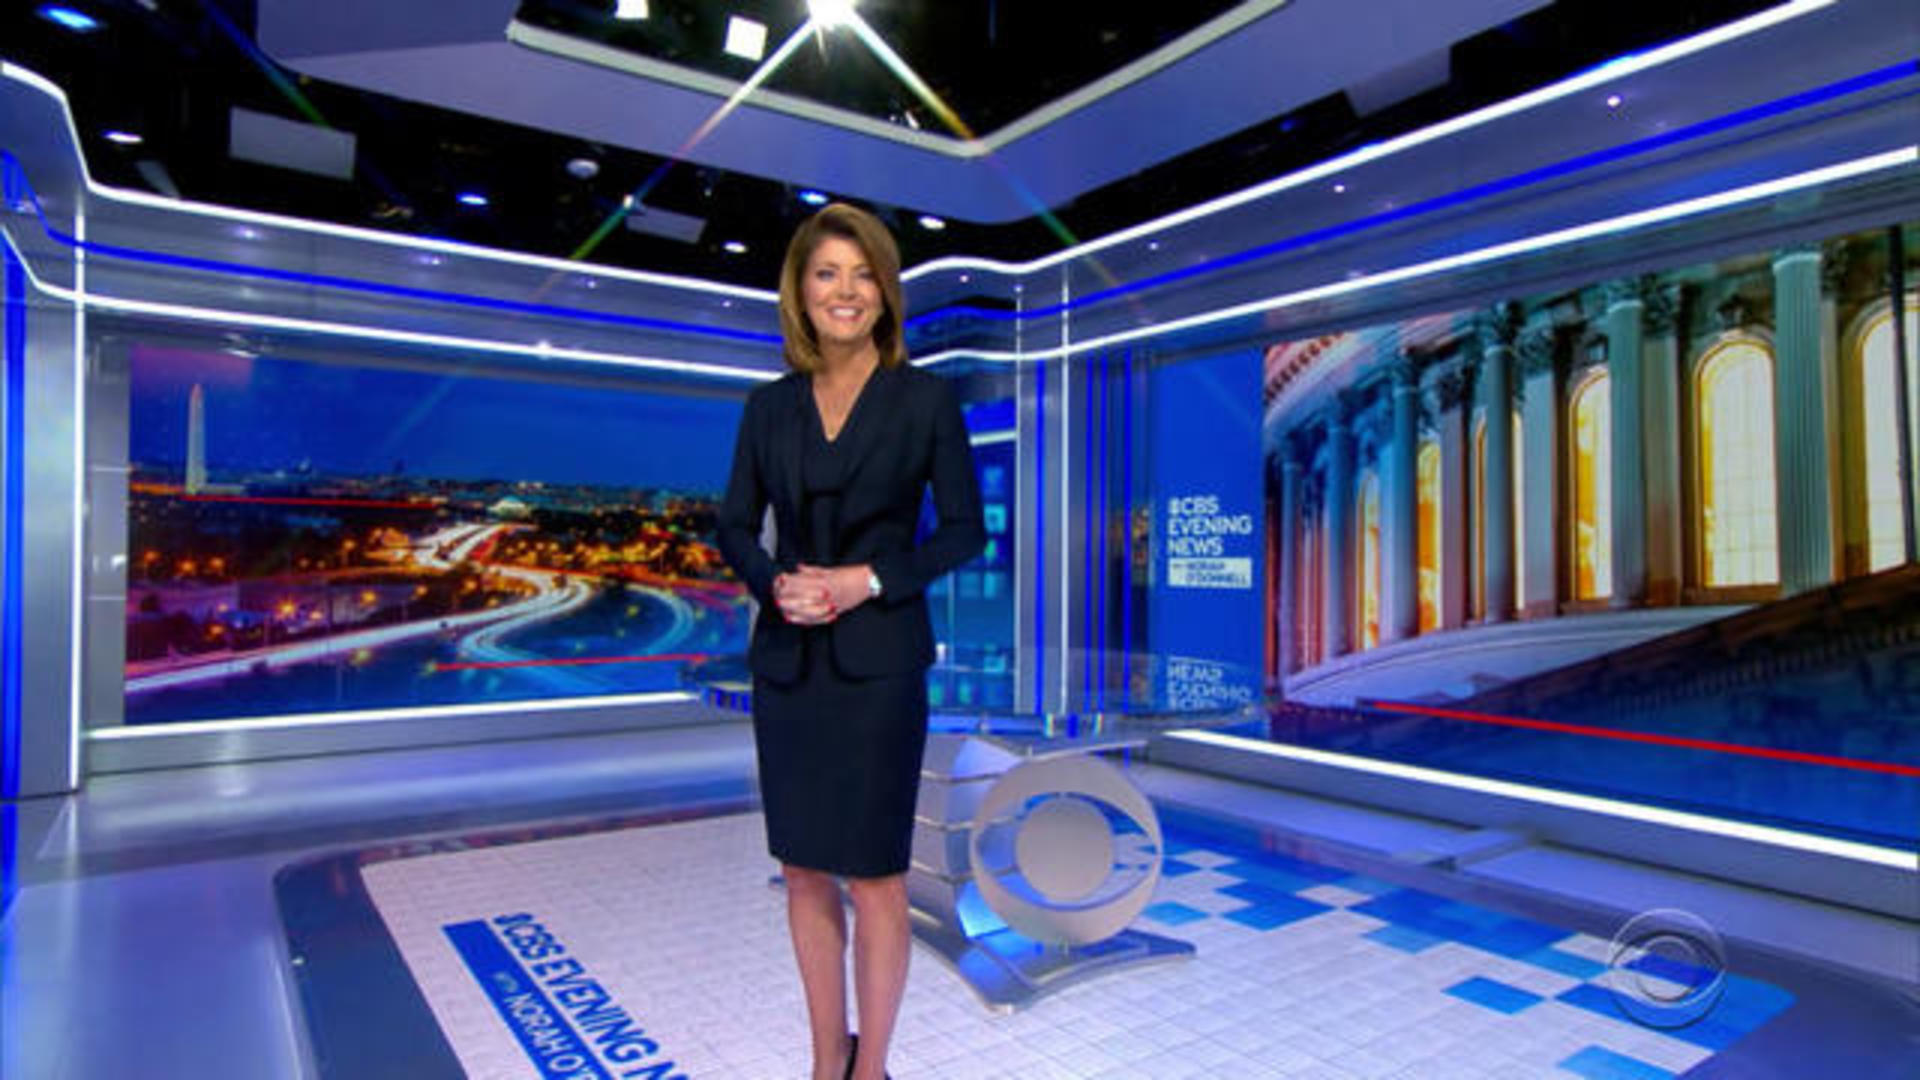 Cbs Evening News With Norah O Donnell Moves To Washington D C Cbs News